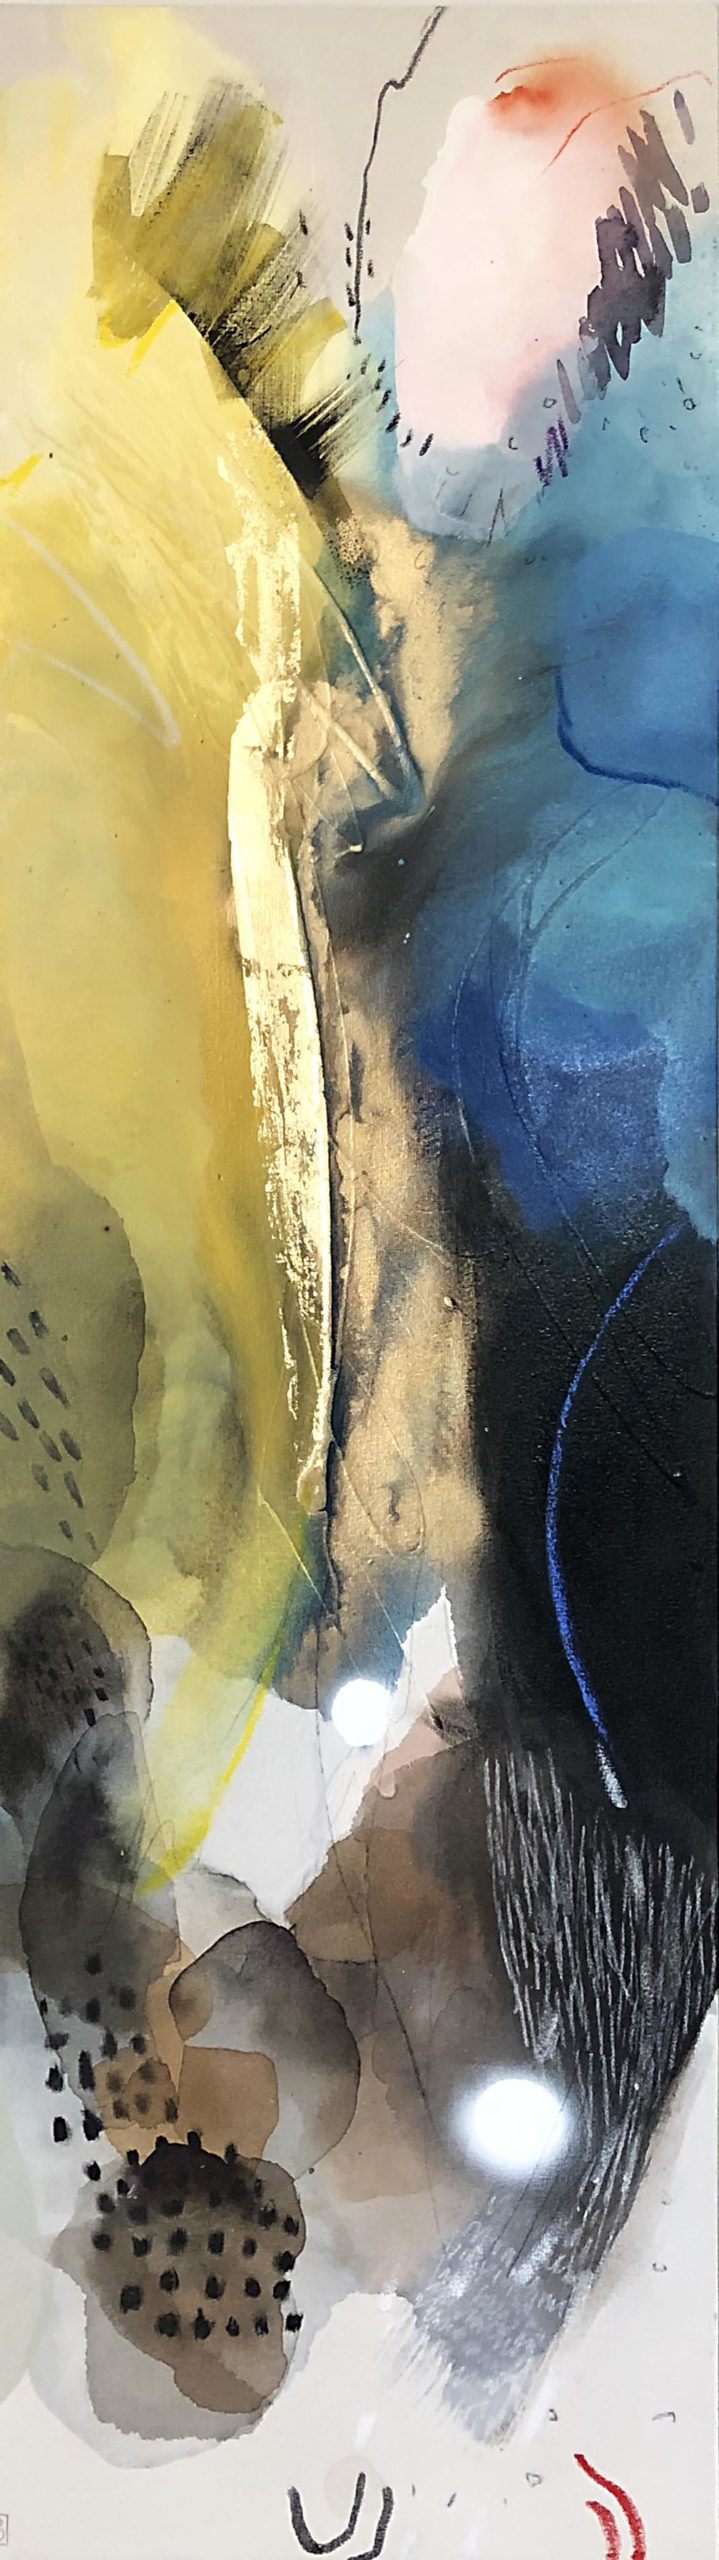 Vicky Sanders Abstract - Ochre and Blue